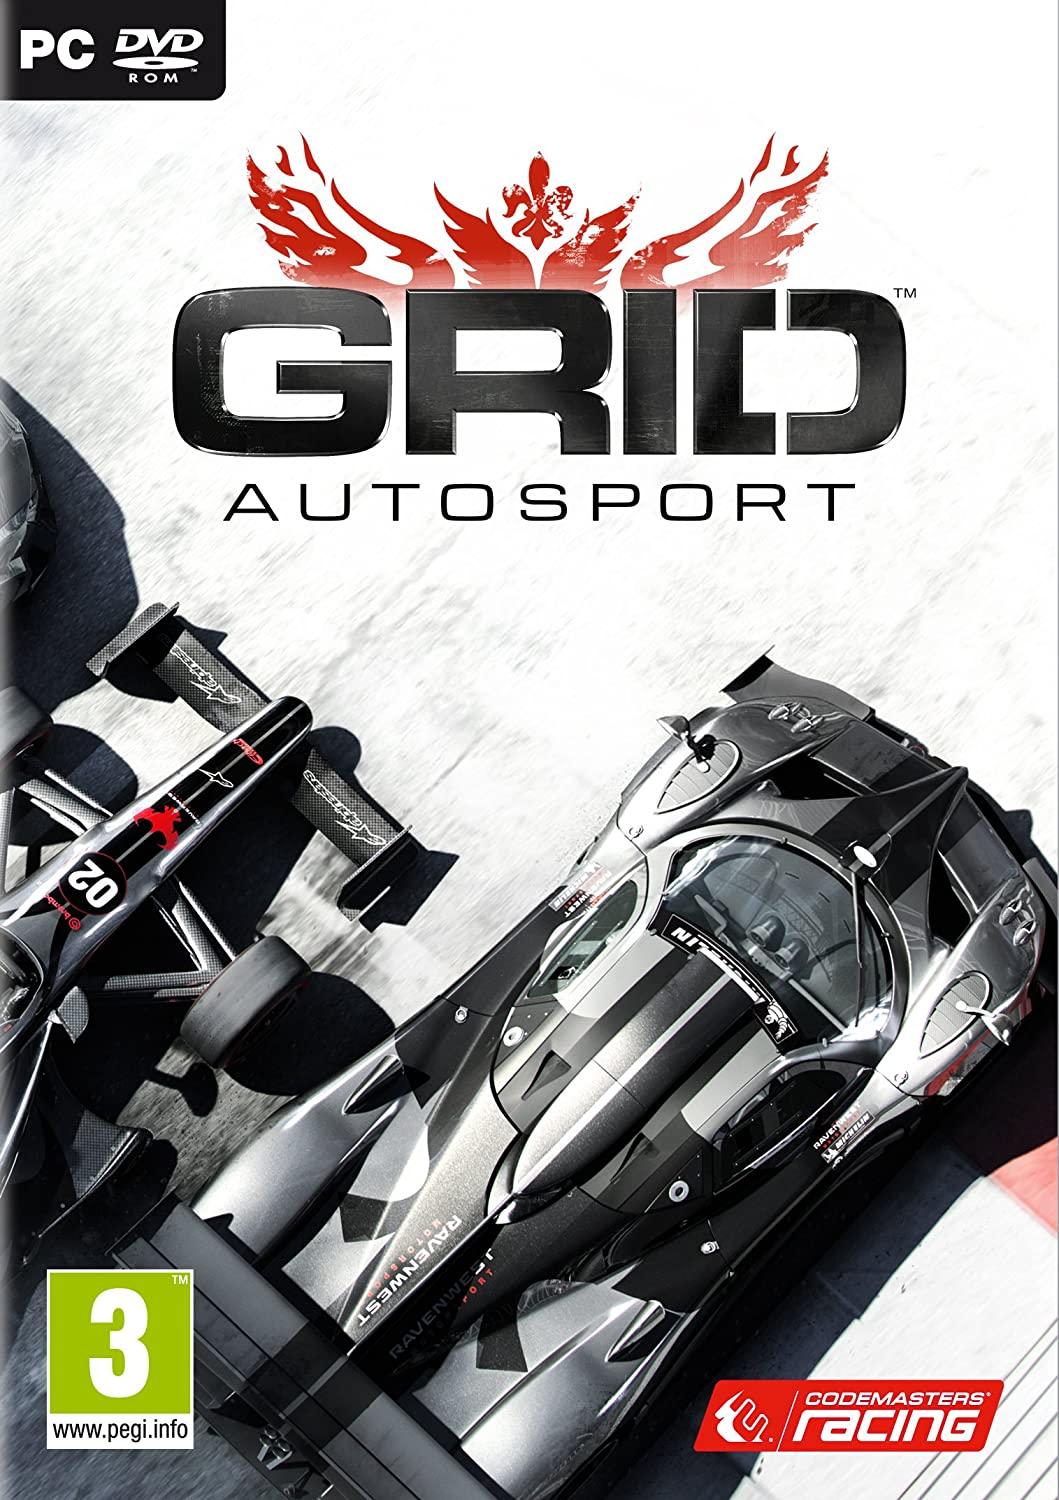 Telecharger GRID Autosport PC Crack